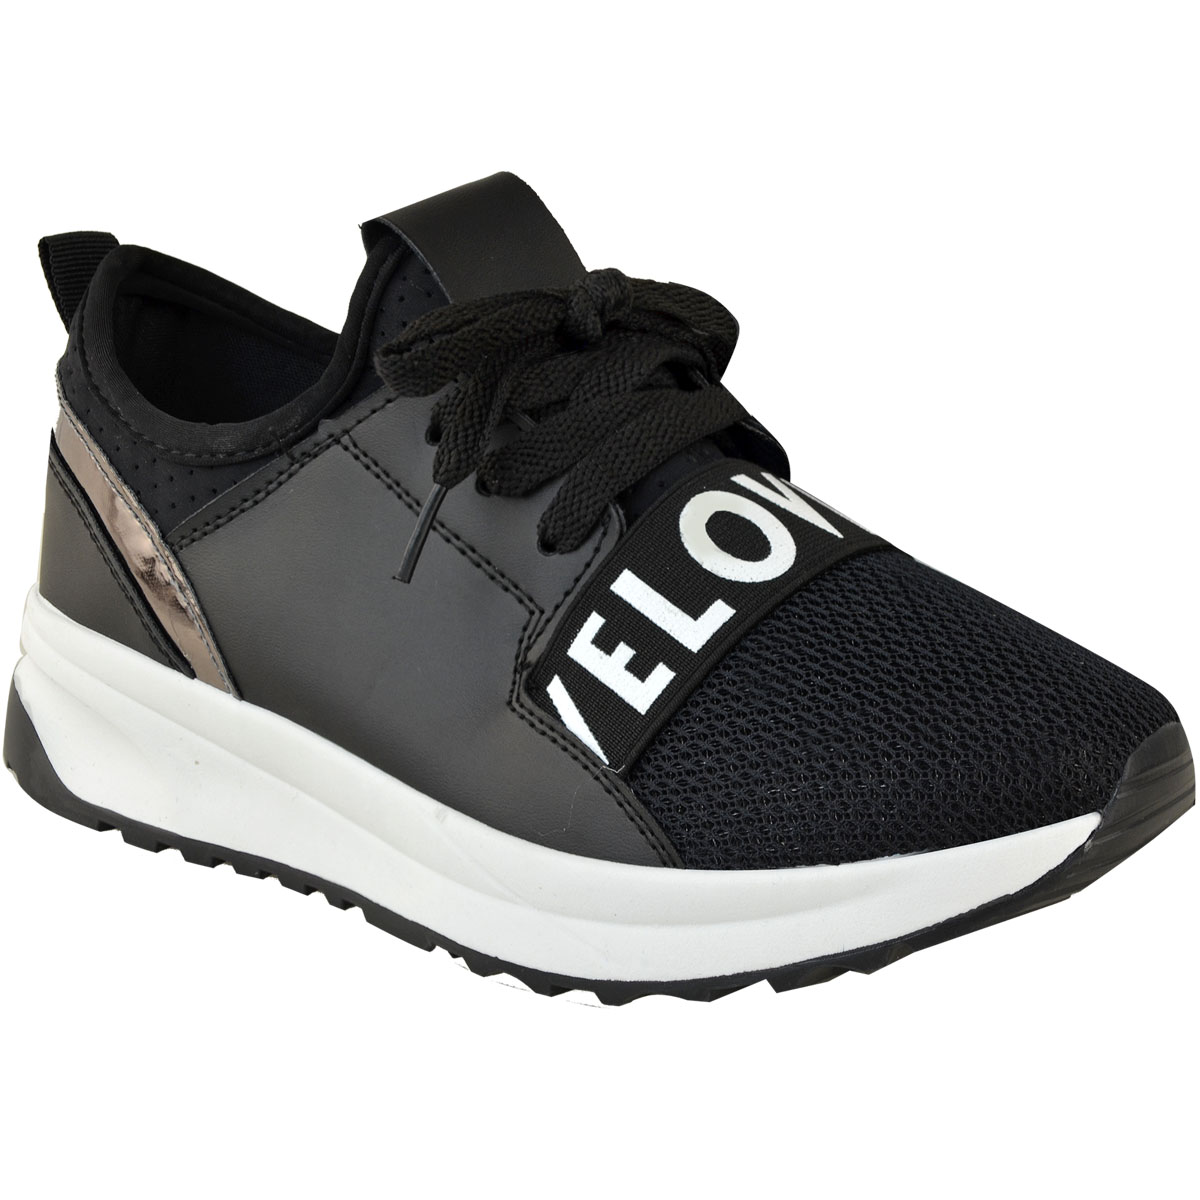 Mujer Love Bali Runners Trainers Trainers Runners Sneakers Sports Luxe  Casual Zapatos Talla 309257 ae25a24c73